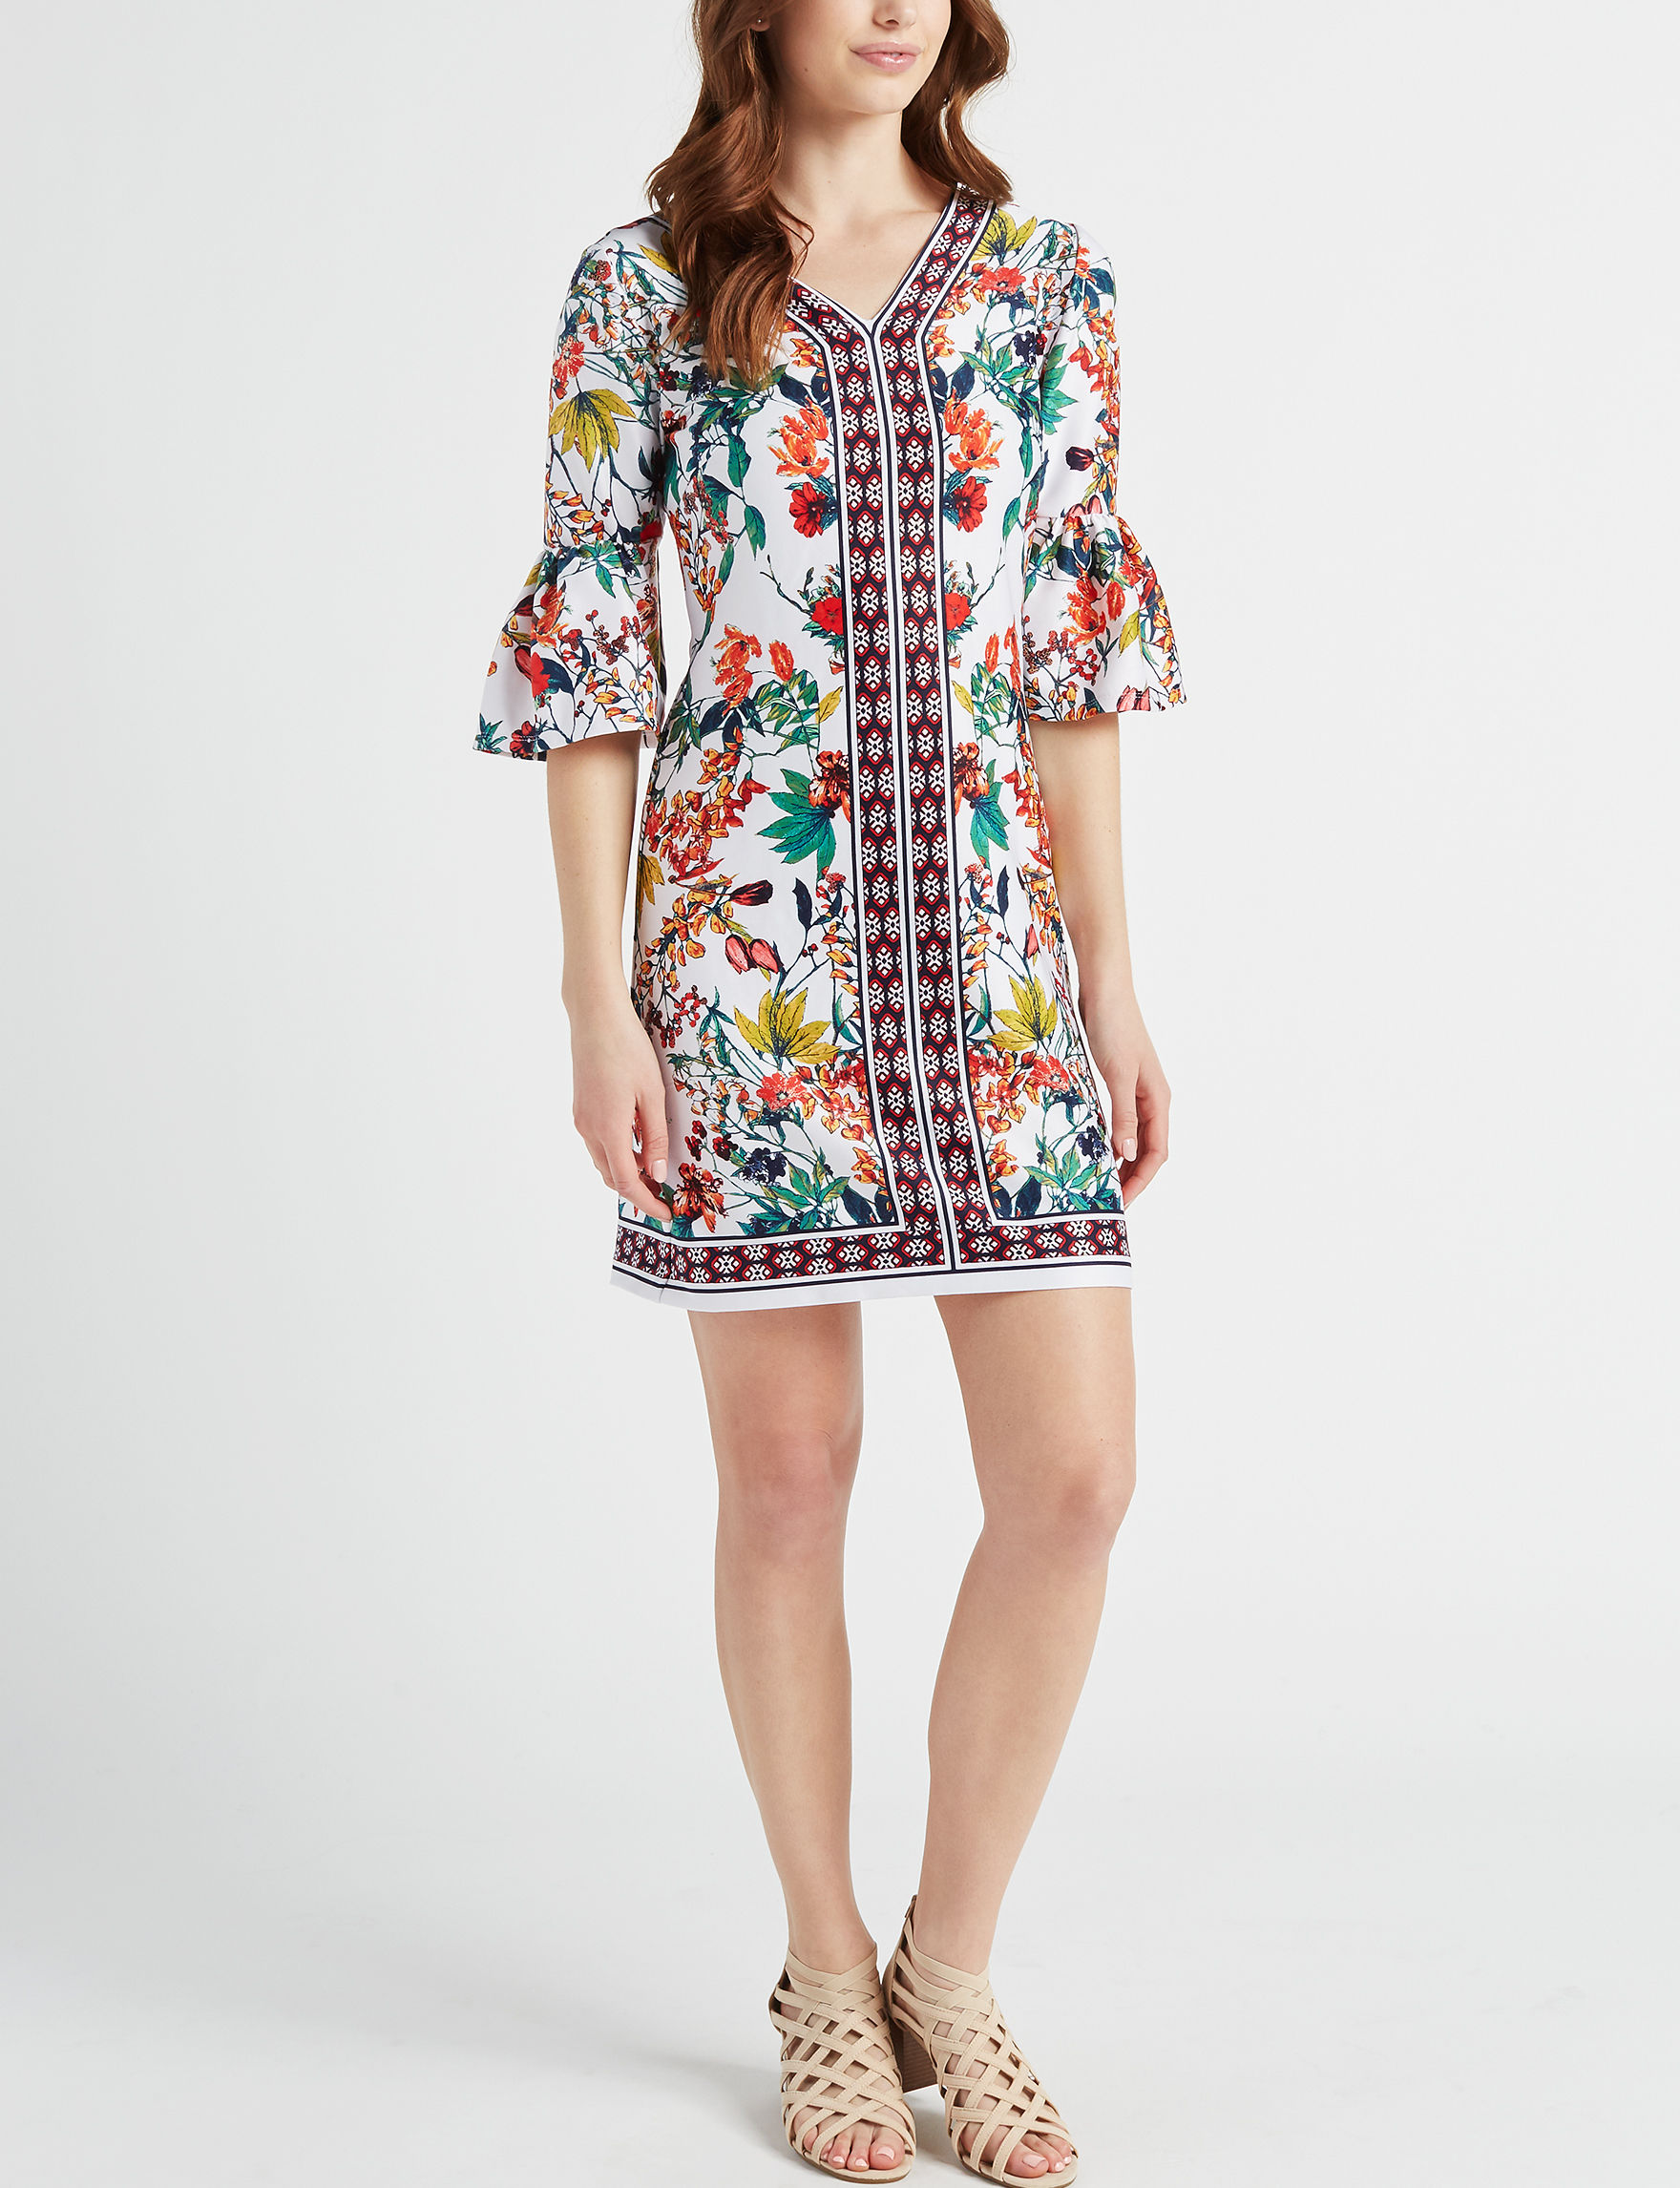 Robbie Bee White Floral Everyday & Casual Shift Dresses